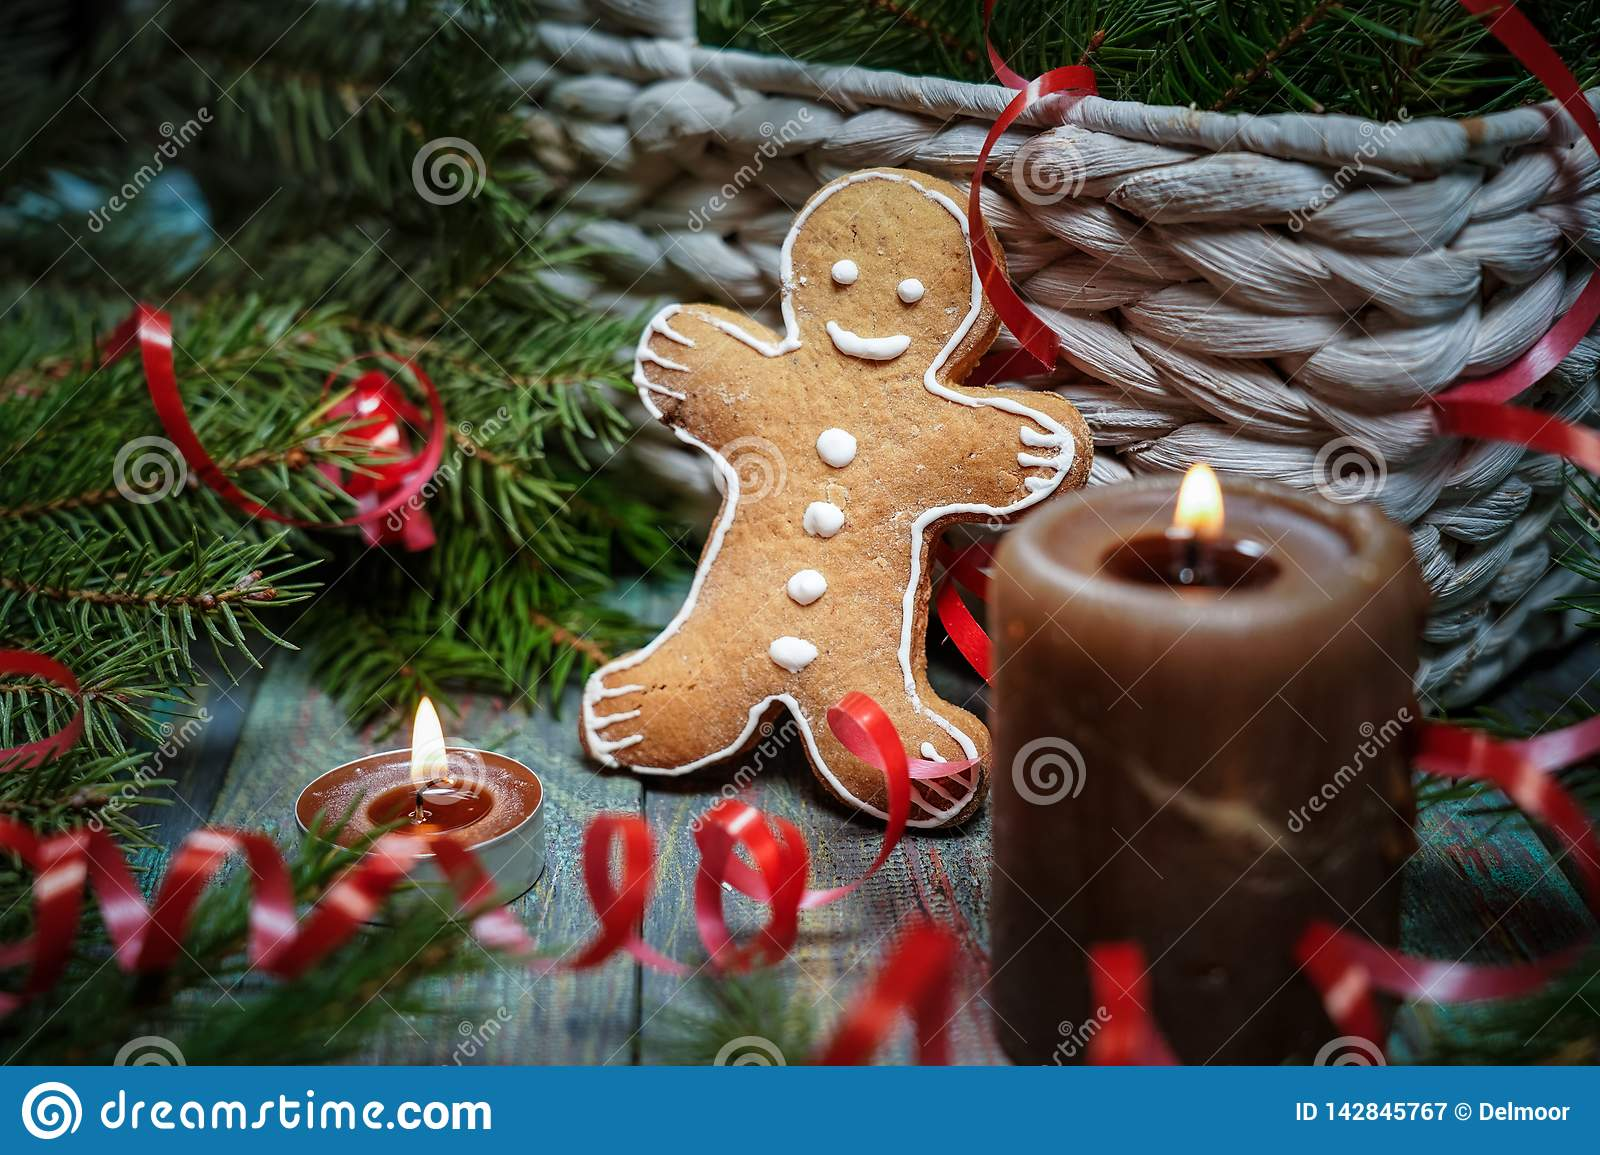 A gingerbread man with Christmas decorations and lots of fir branches